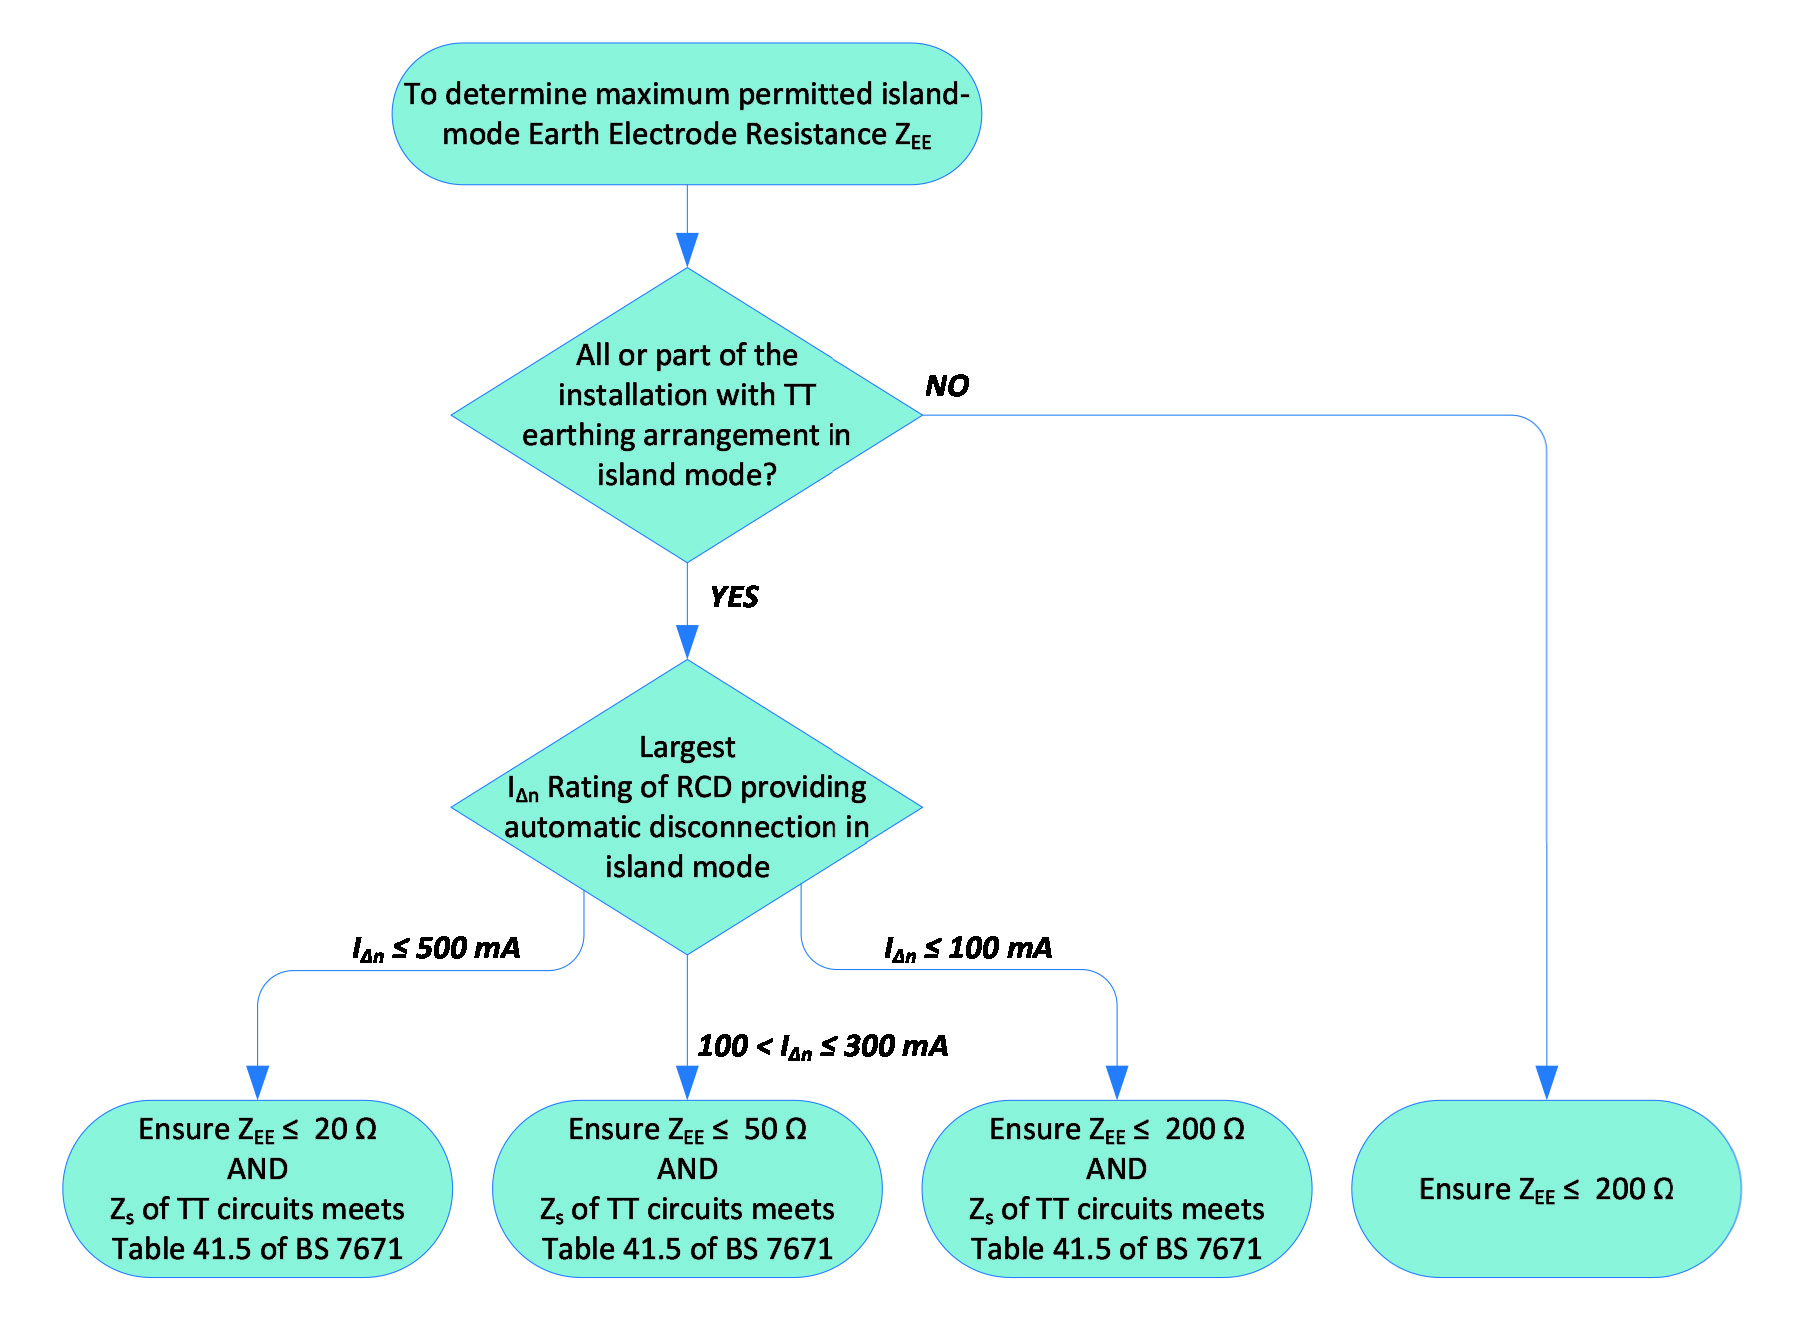 Figure 6 Flowchart to determine maximum permitted island mode earth electrode resistance